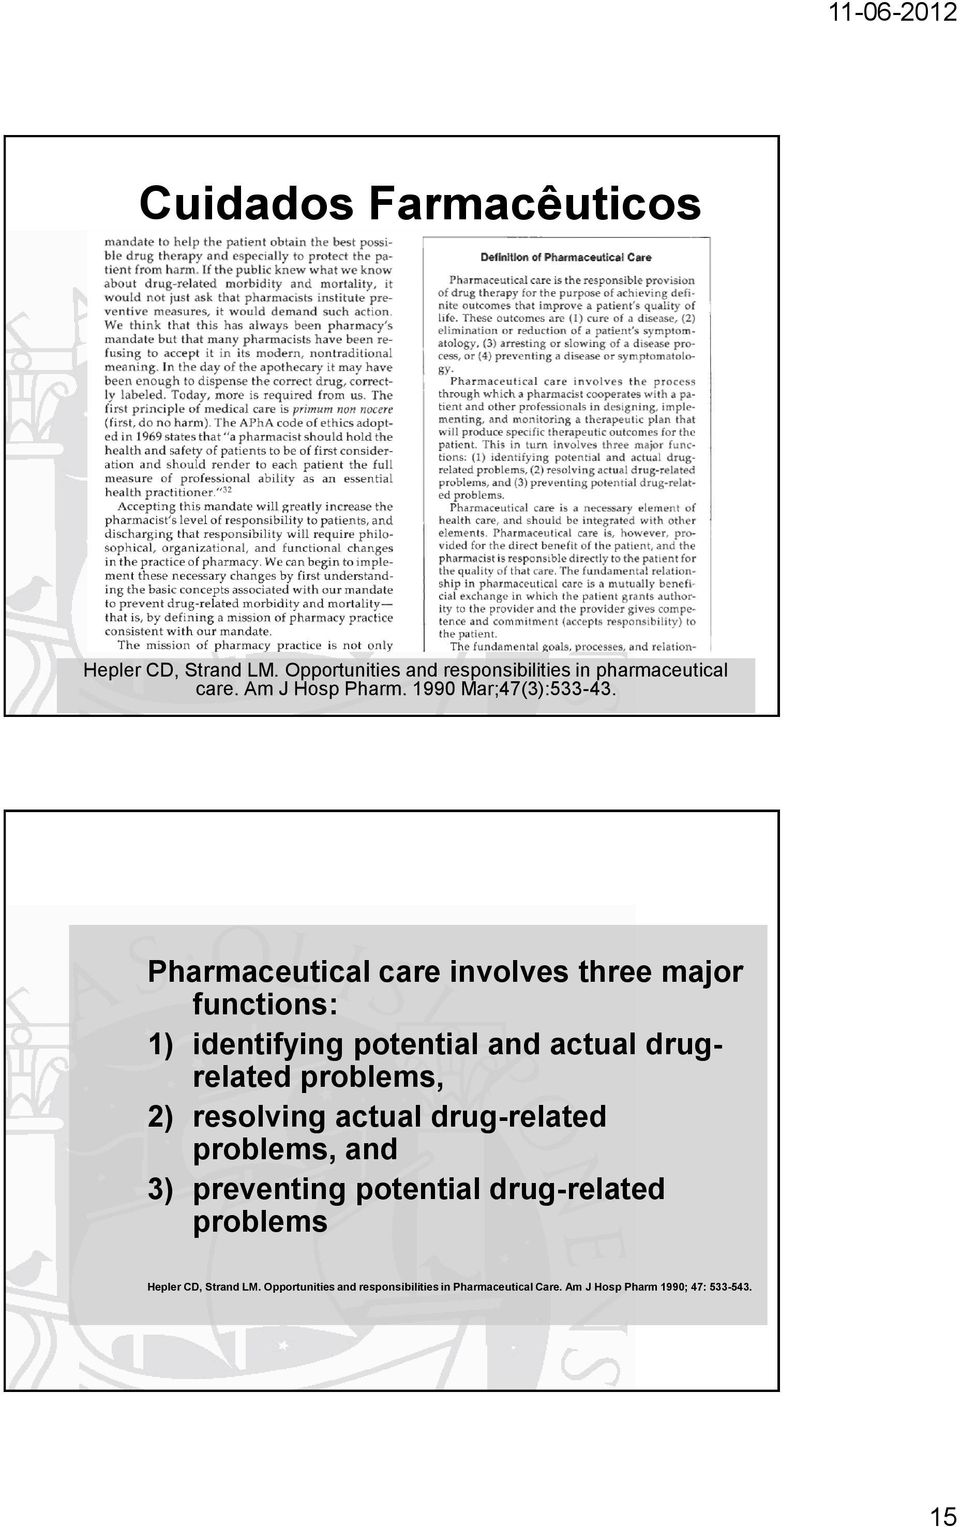 Pharmaceutical care involves three major functions: 1) identifying potential and actual drugrelated problems, 2)